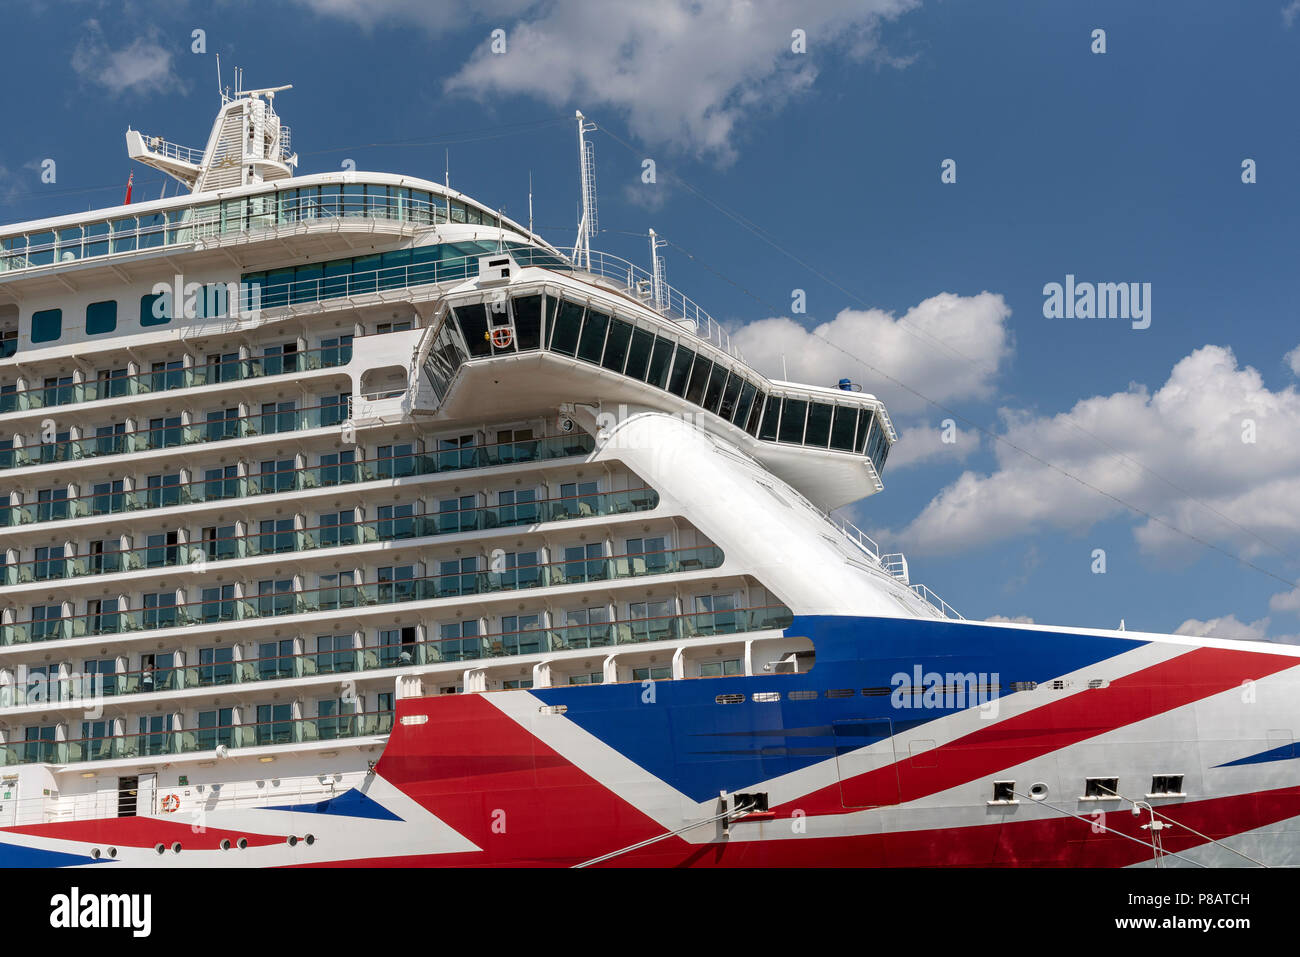 Britannia cruise ship berthed in the Port of Southampton UK. P&O company. - Stock Image